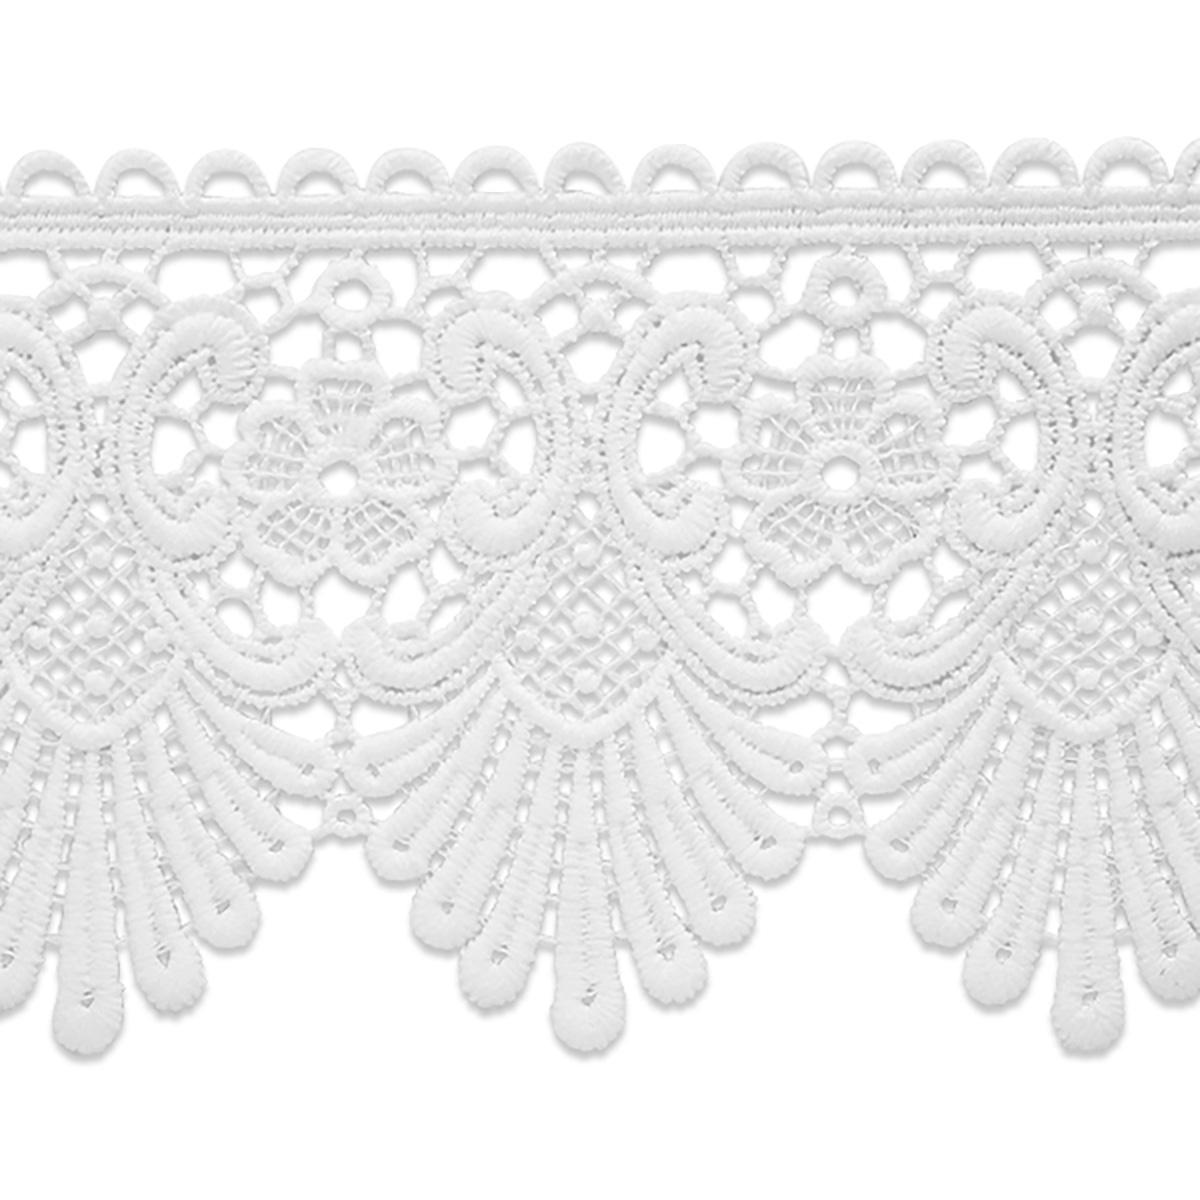 Titanic Costume Guide for Ladies Swirl  Flower Lace Trim White Precut 10 Yard $48.72 AT vintagedancer.com